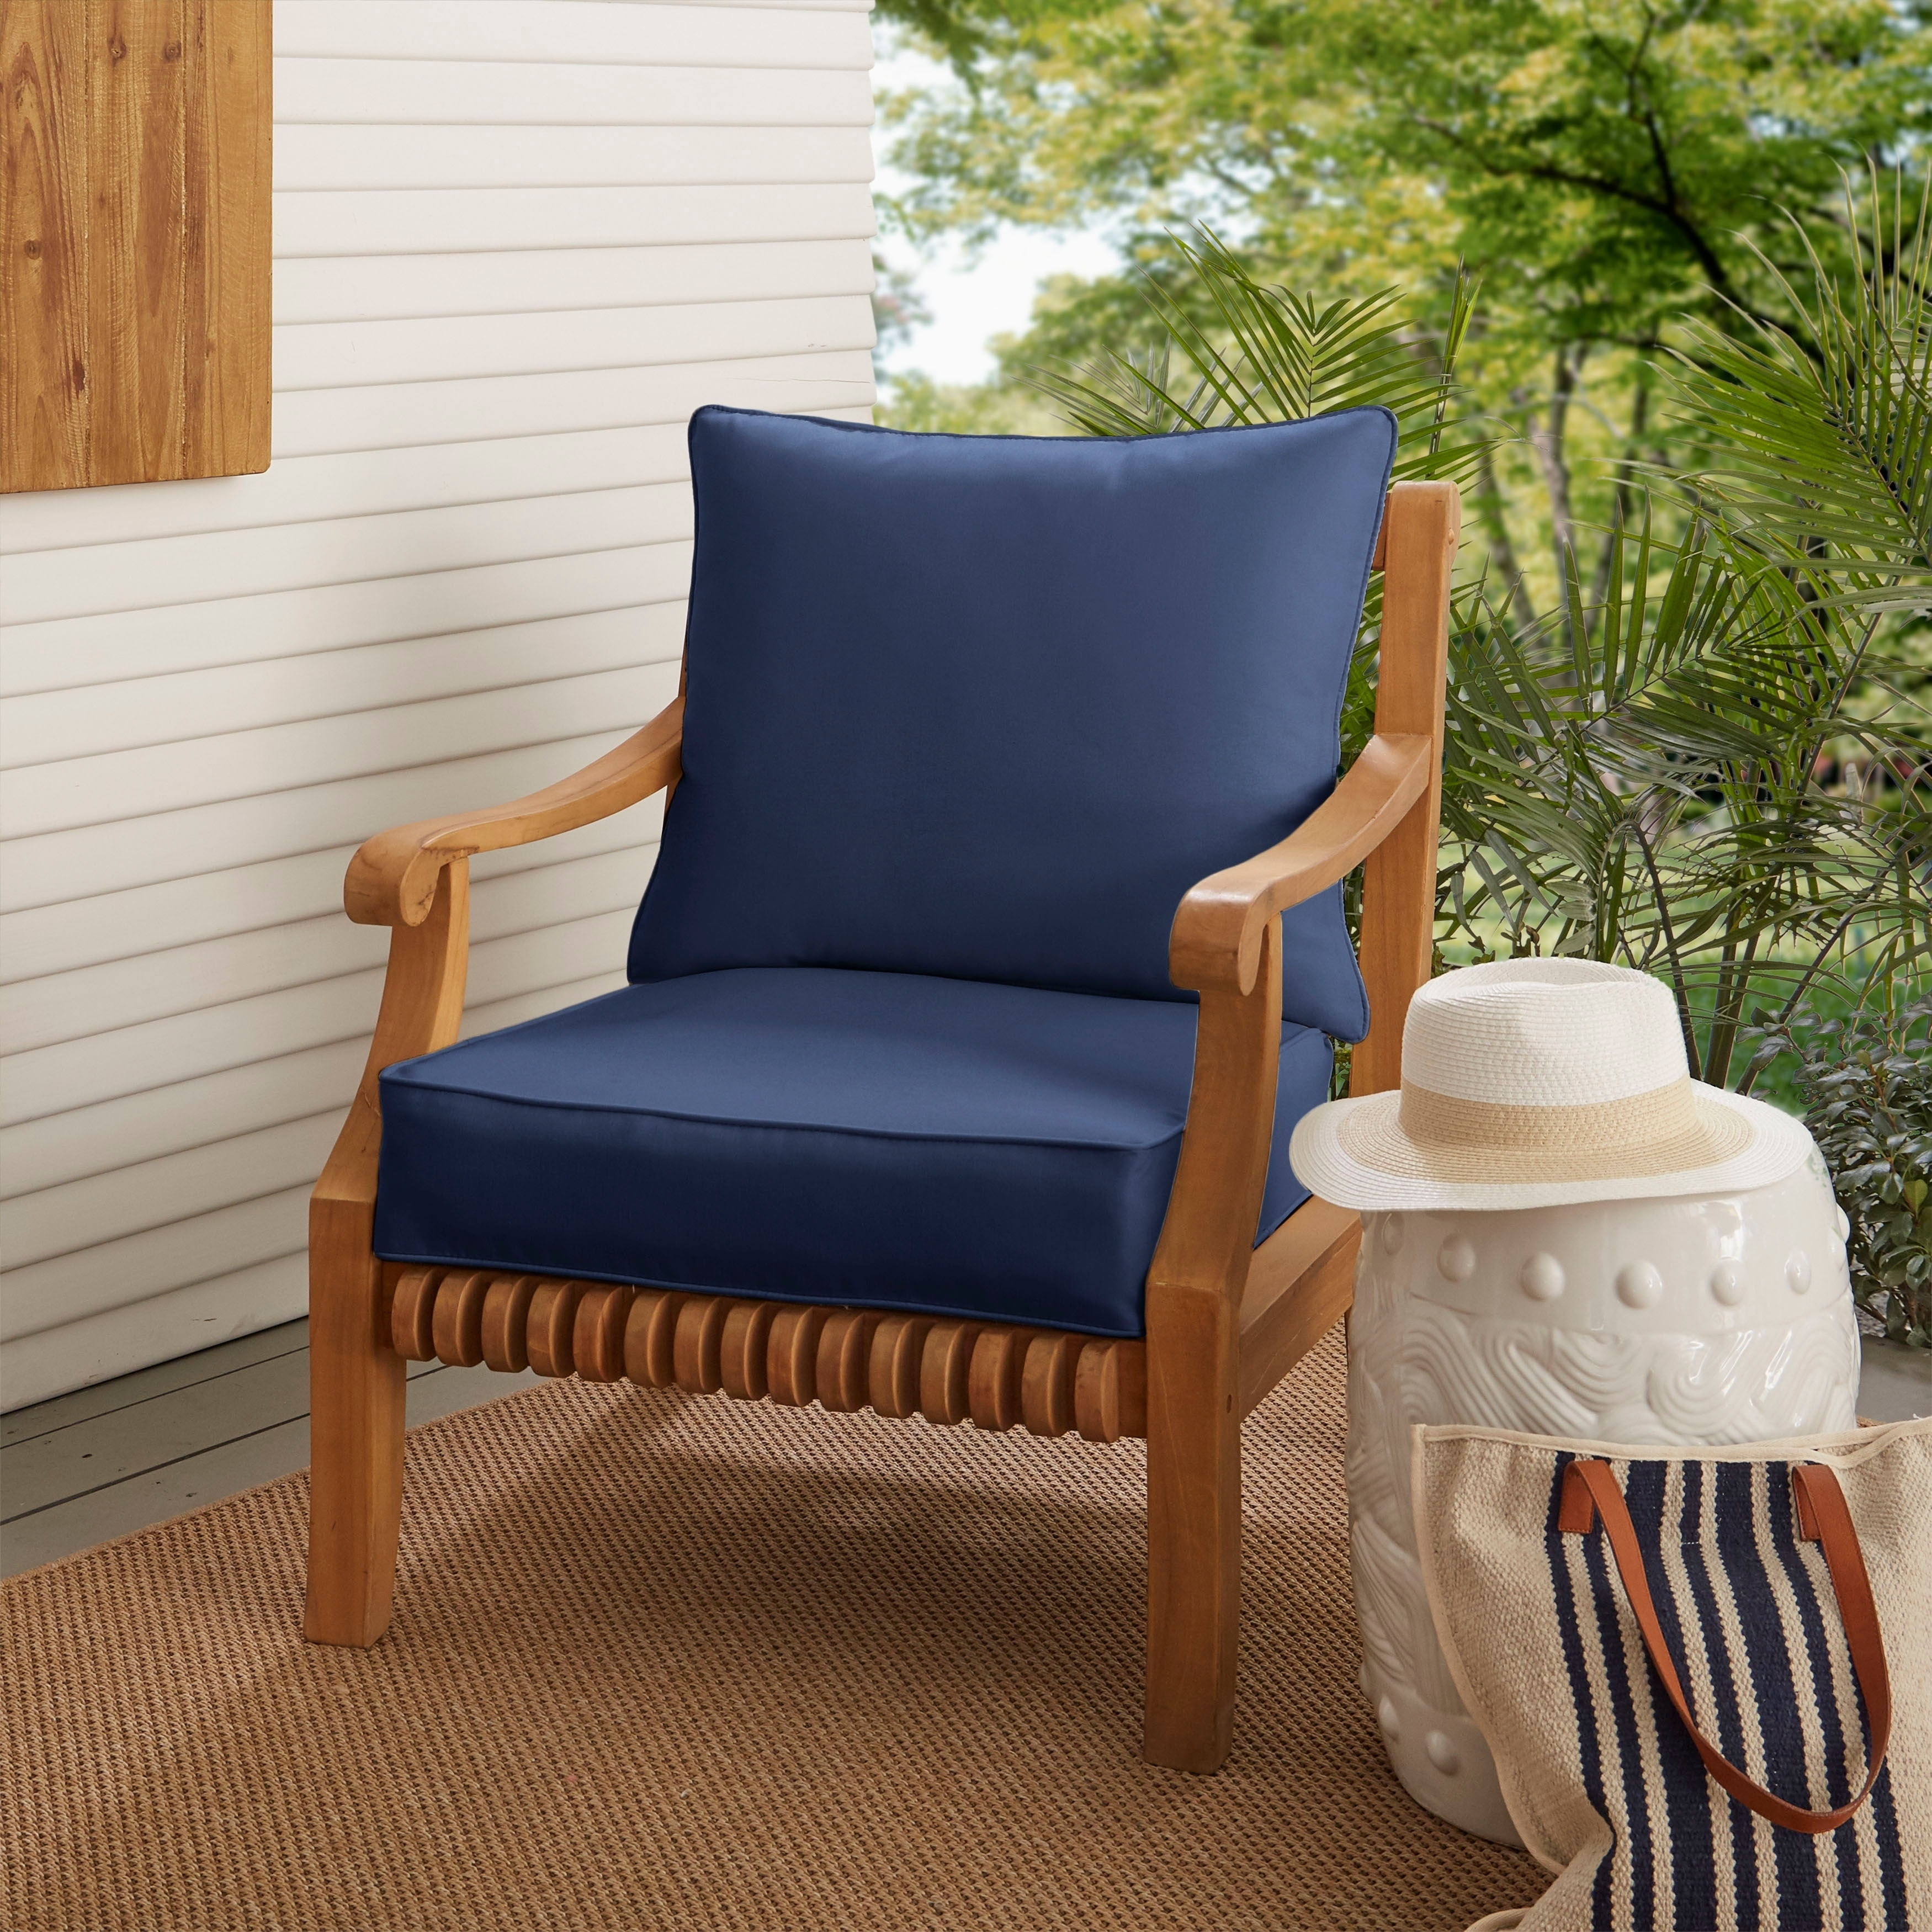 Patio Chair Replacement Cushions Buy Outdoor Cushions Pillows Online At Overstock Our Best